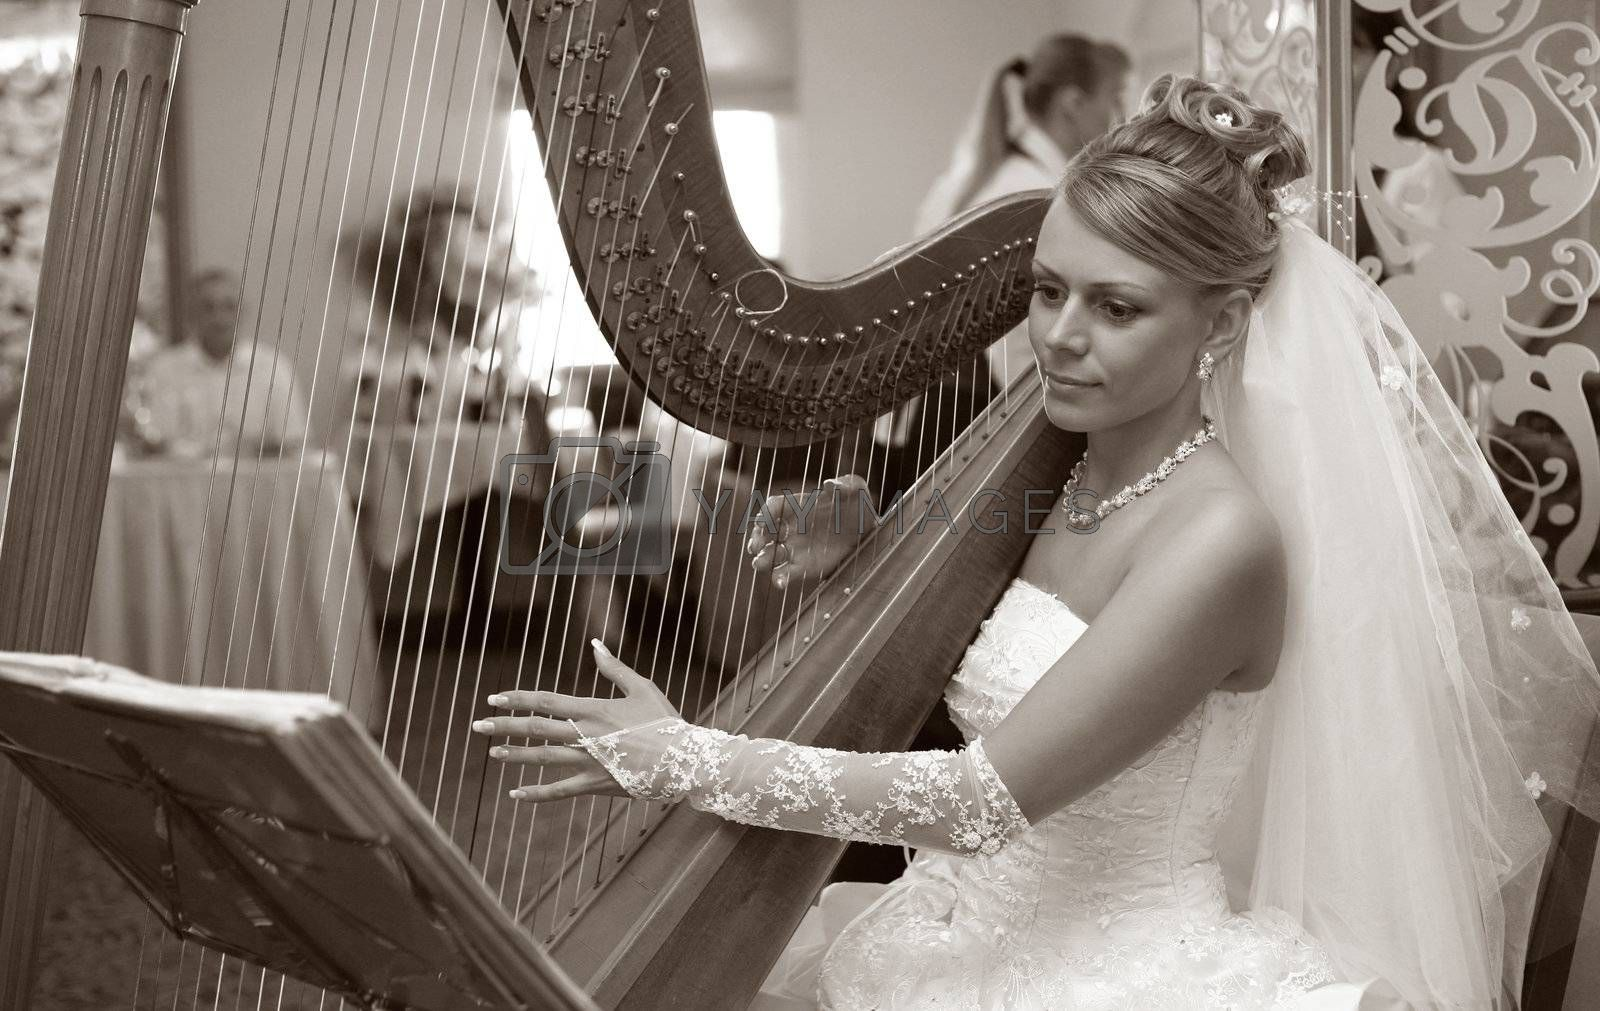 The bride plays on a string musical instrument